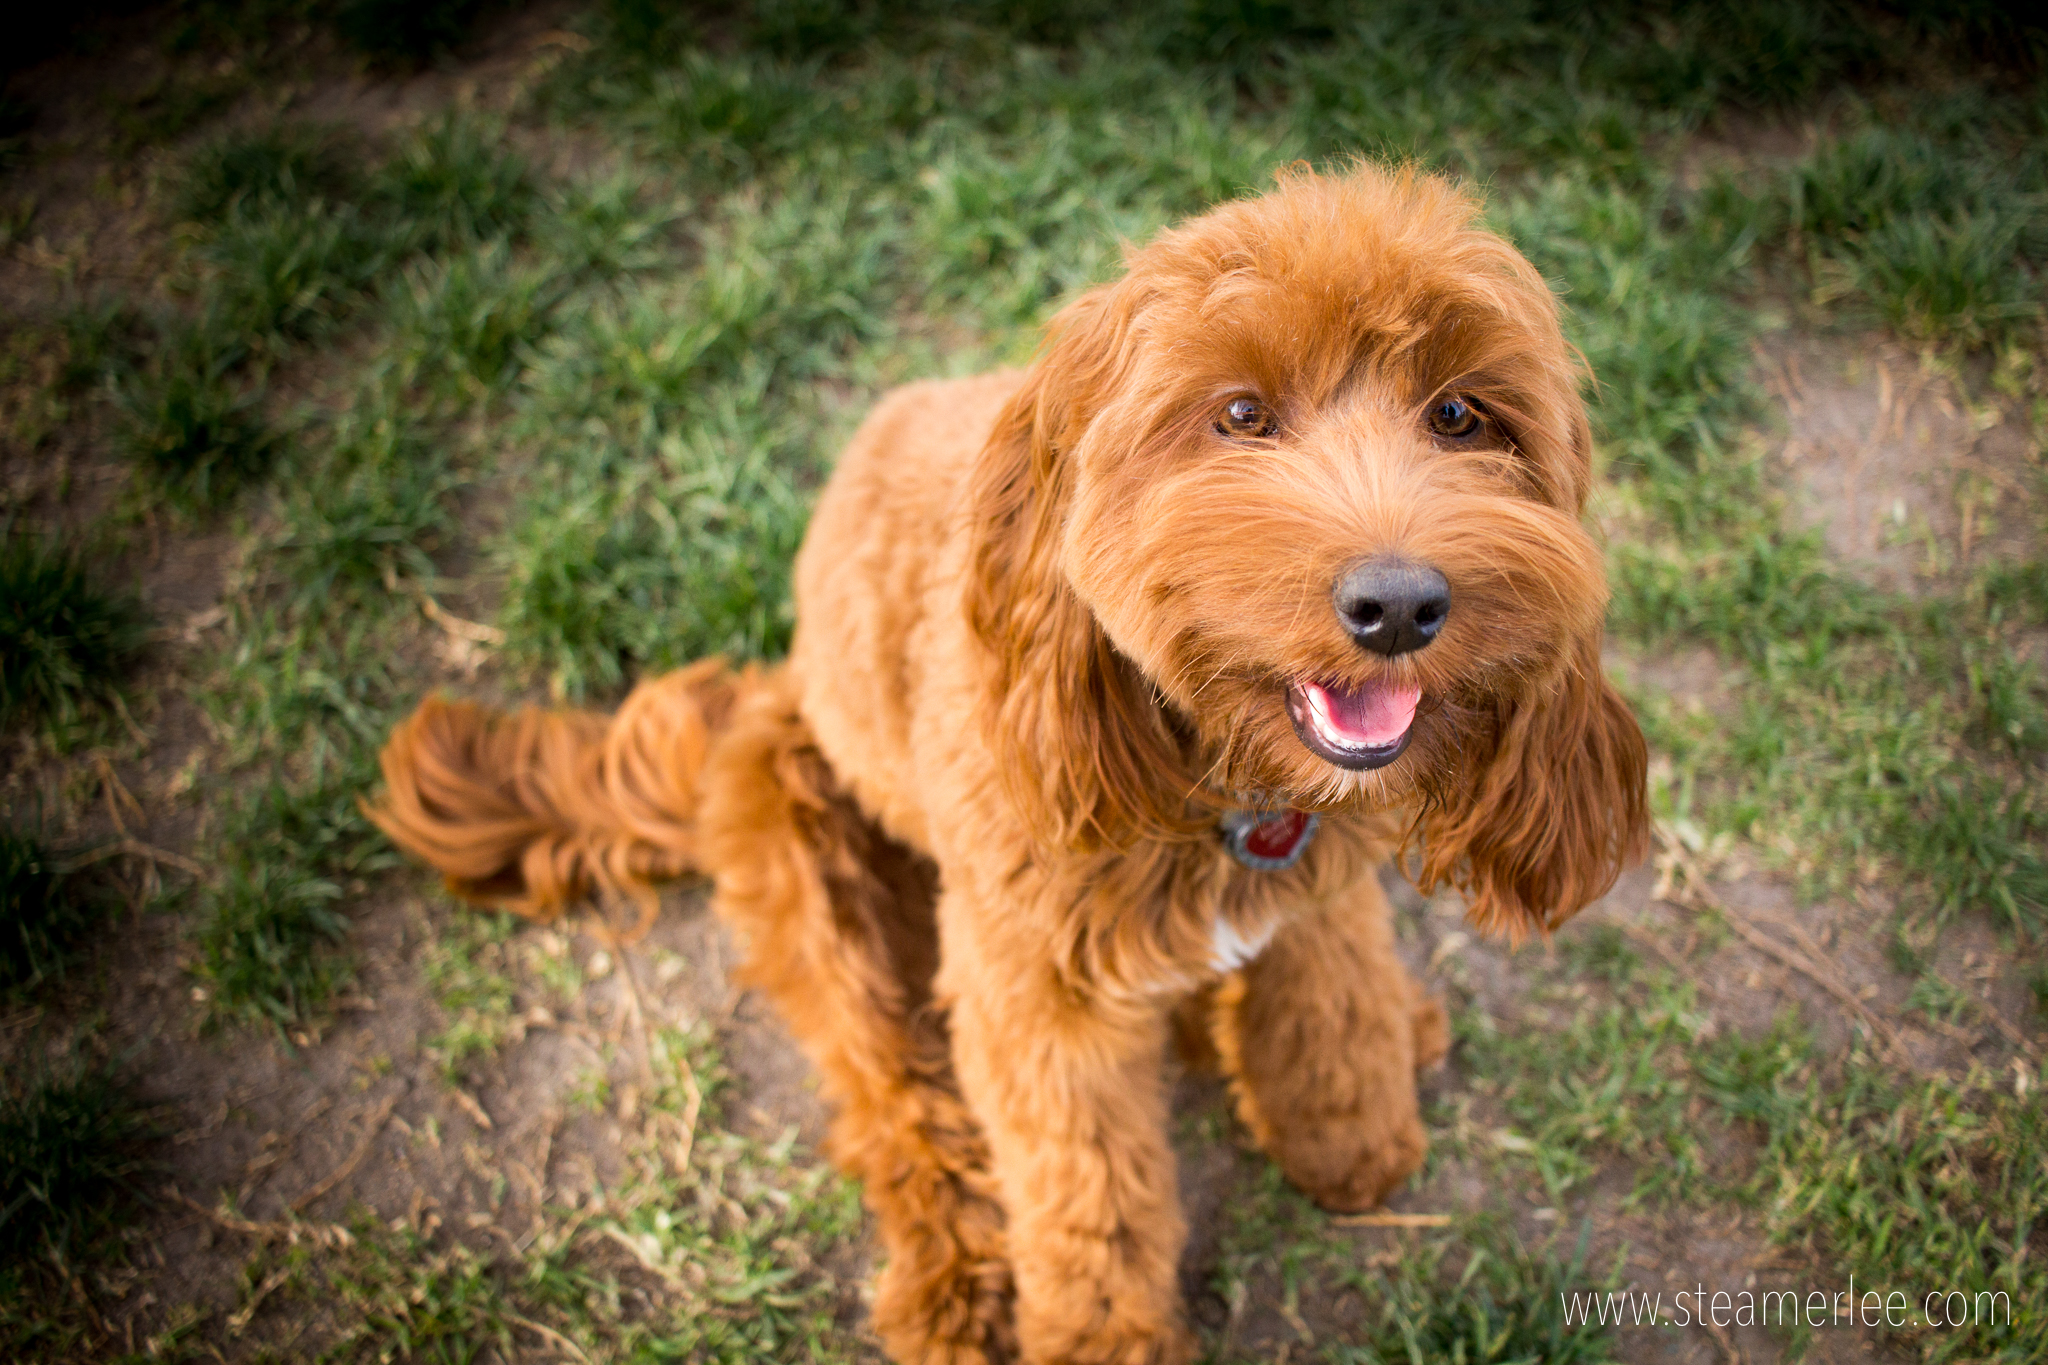 Gabby, a red labradoodle. I've never met a red labradoodle before, so I was super excited to meet Gabby.